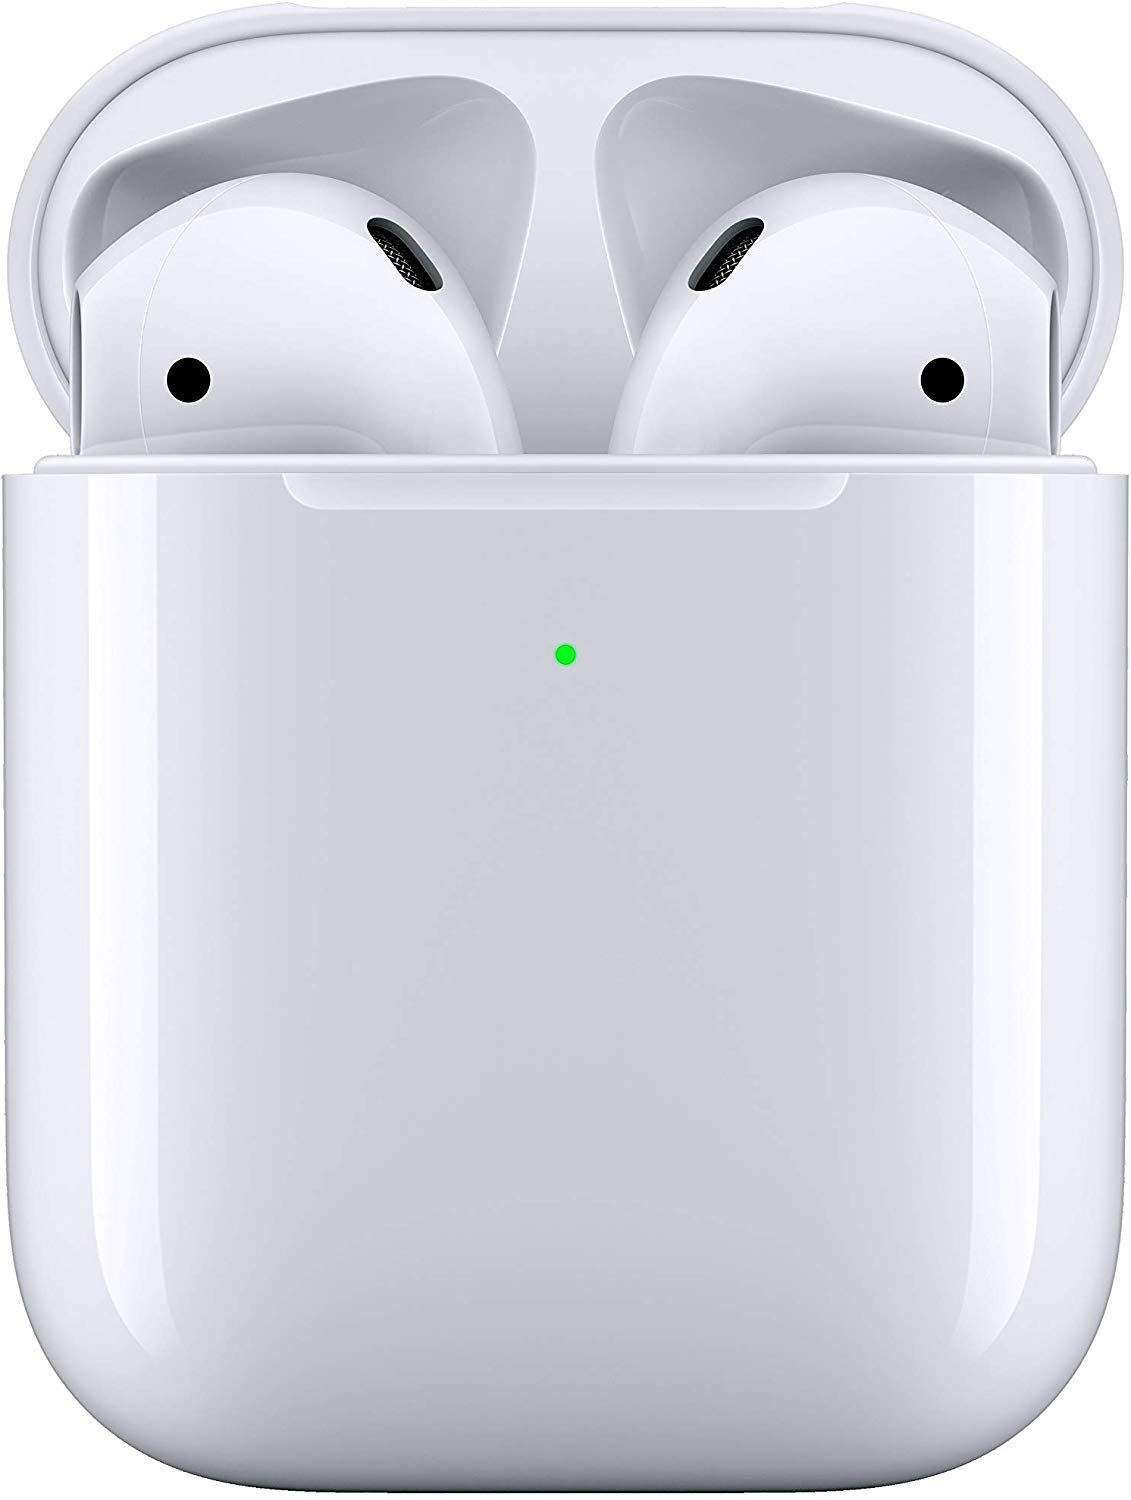 Apple Airpods With Wireless Charging Case Latest Model Wireless Apple Apple Products